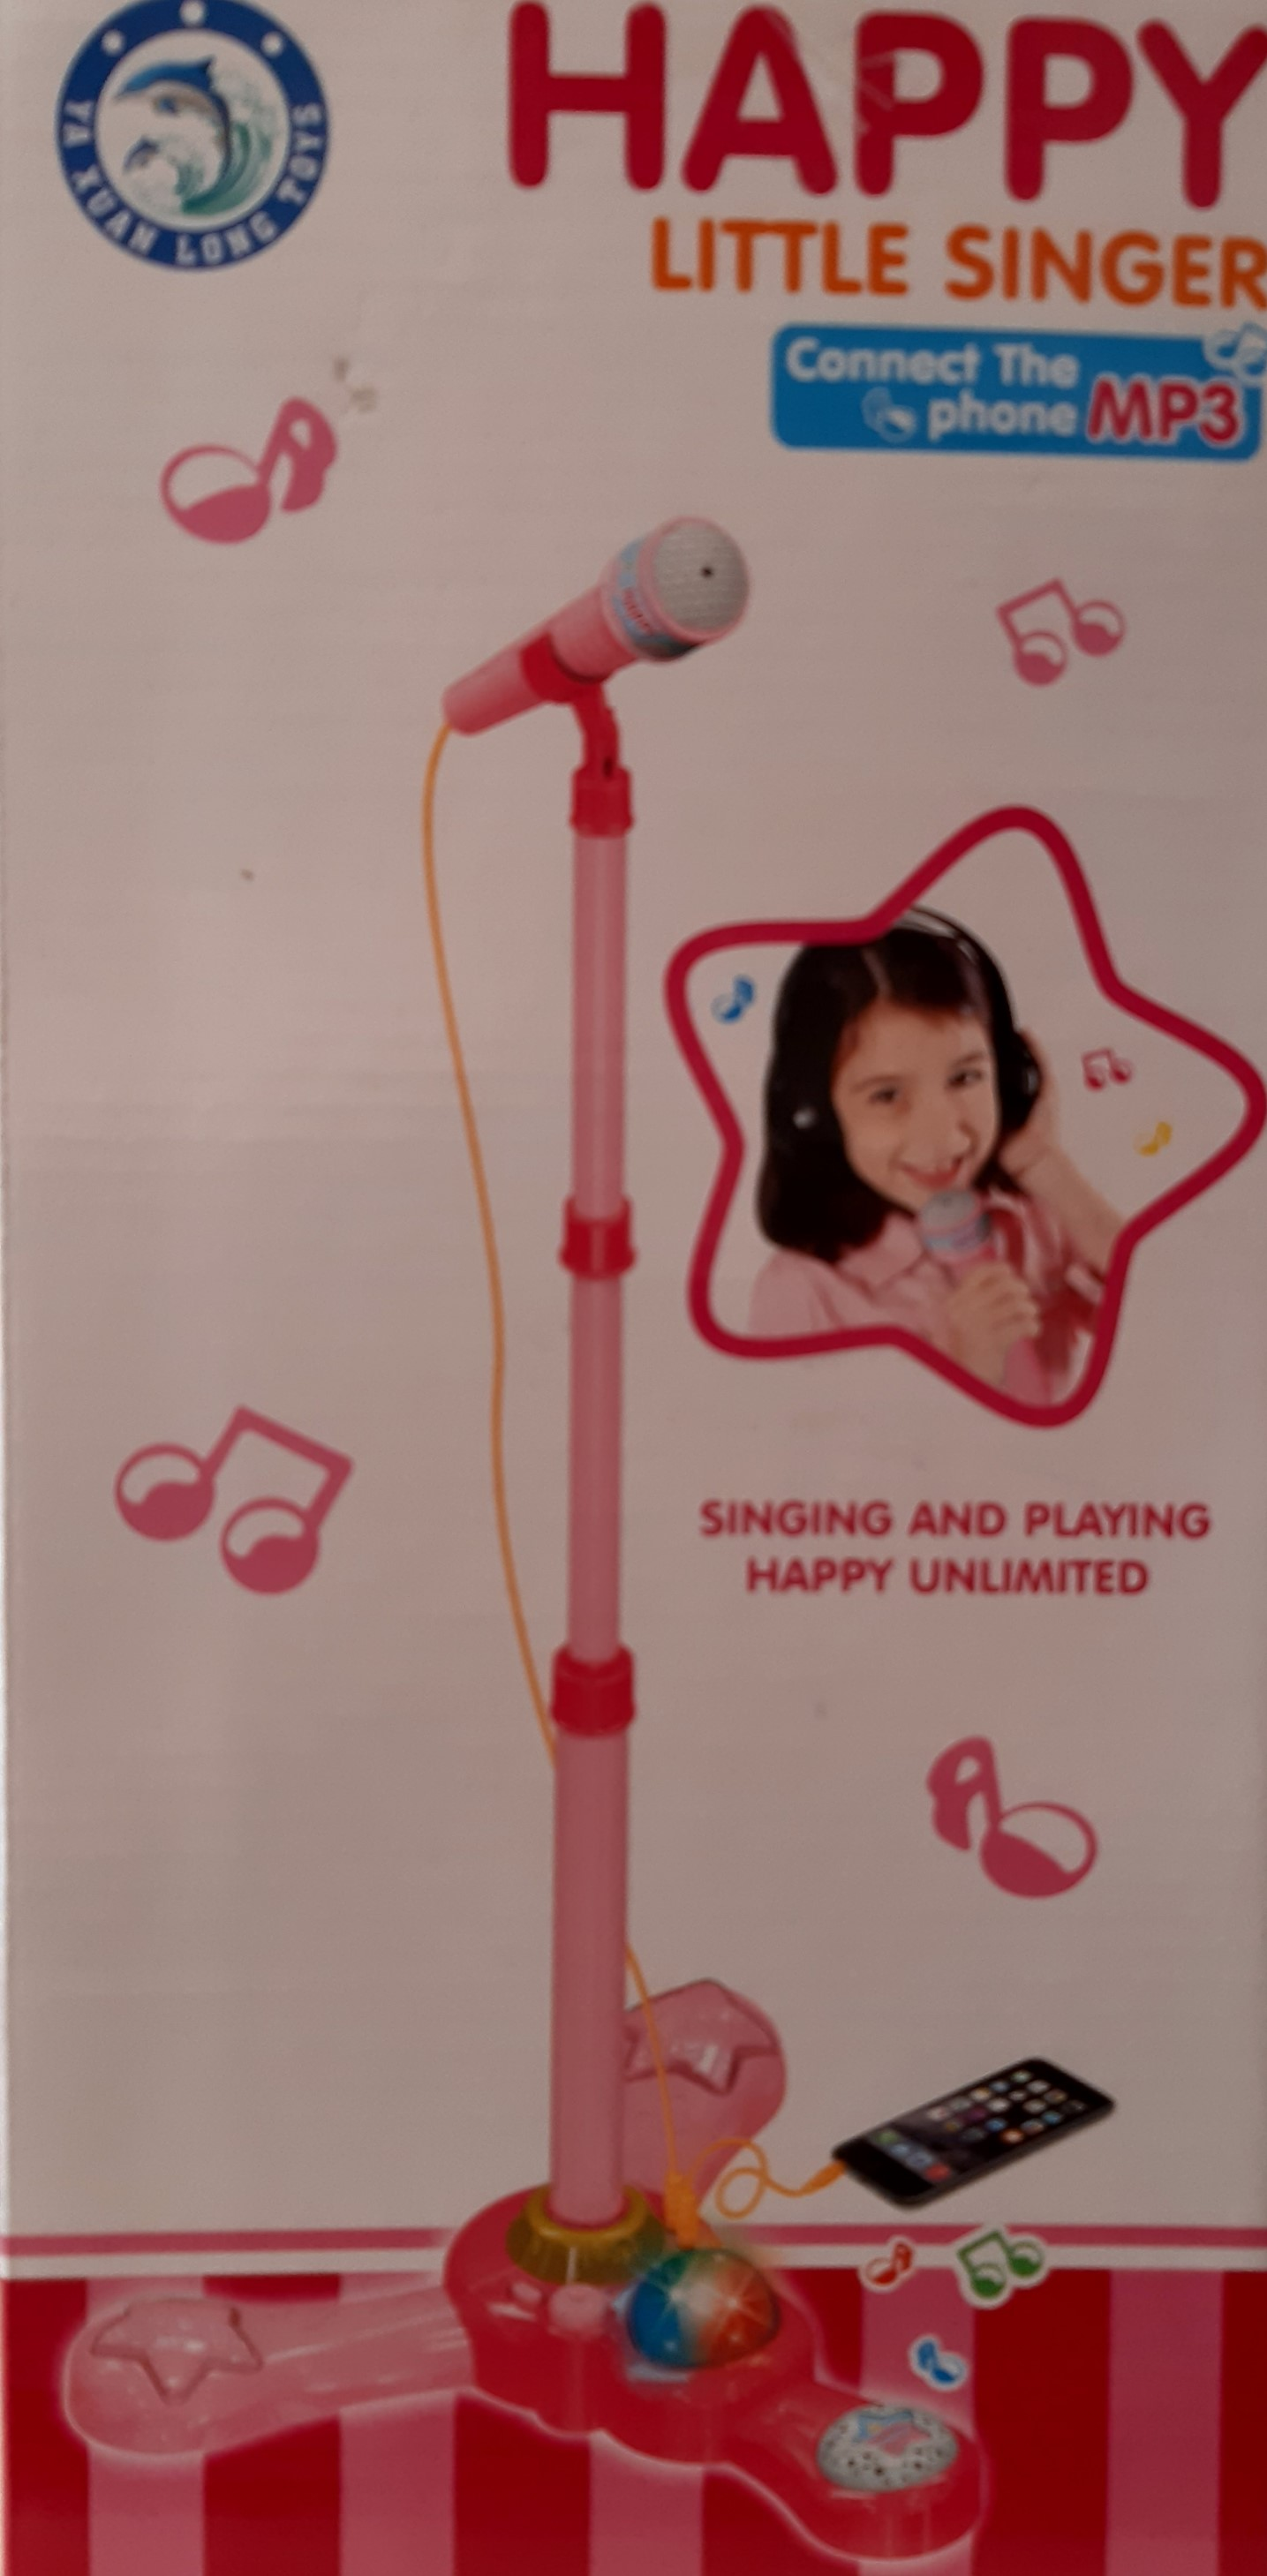 HAPPY LITTLE SINGER CONNECT THE PHONE MP3 388217